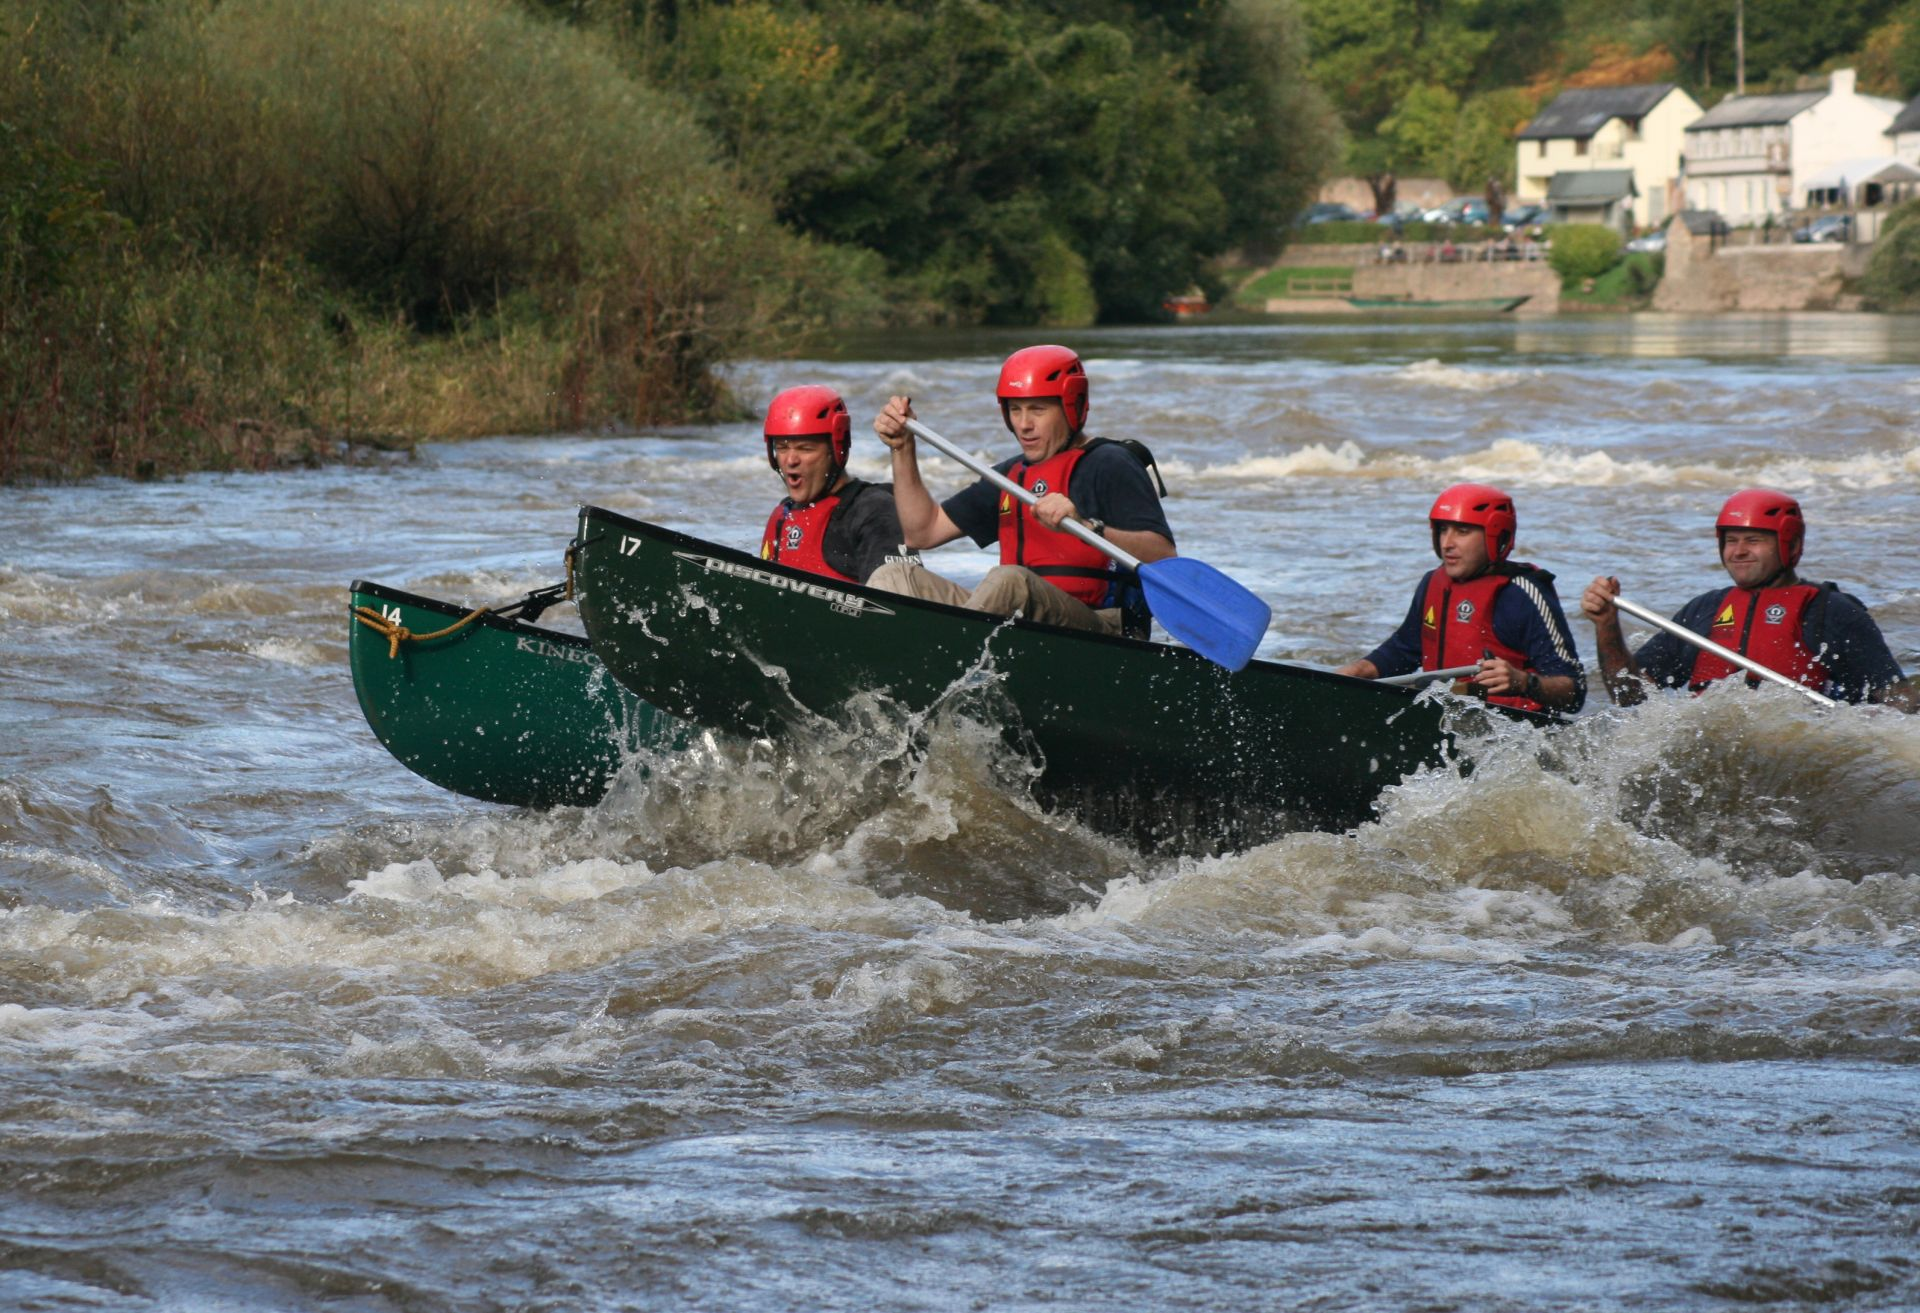 Rafted canoe having fun in the rapids at Symonds Yat